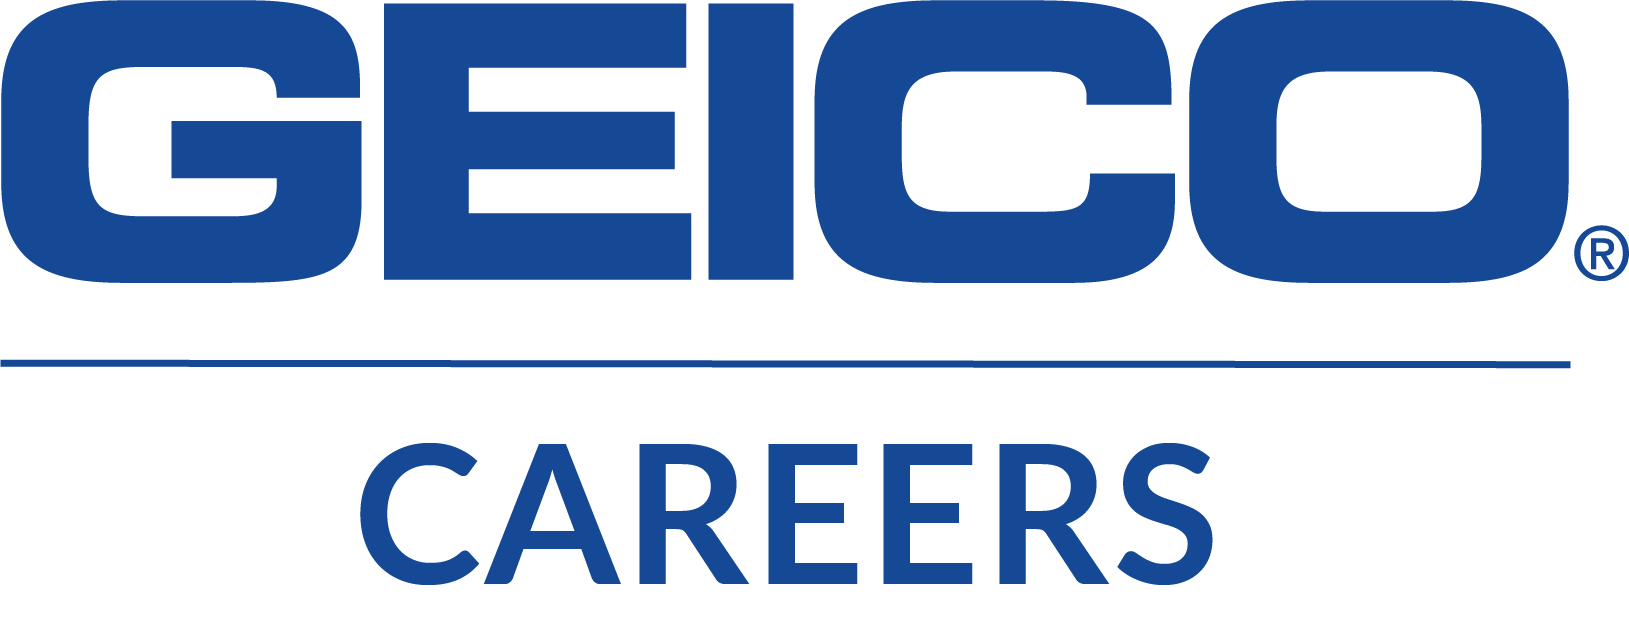 Geico Careers Stacked Blue